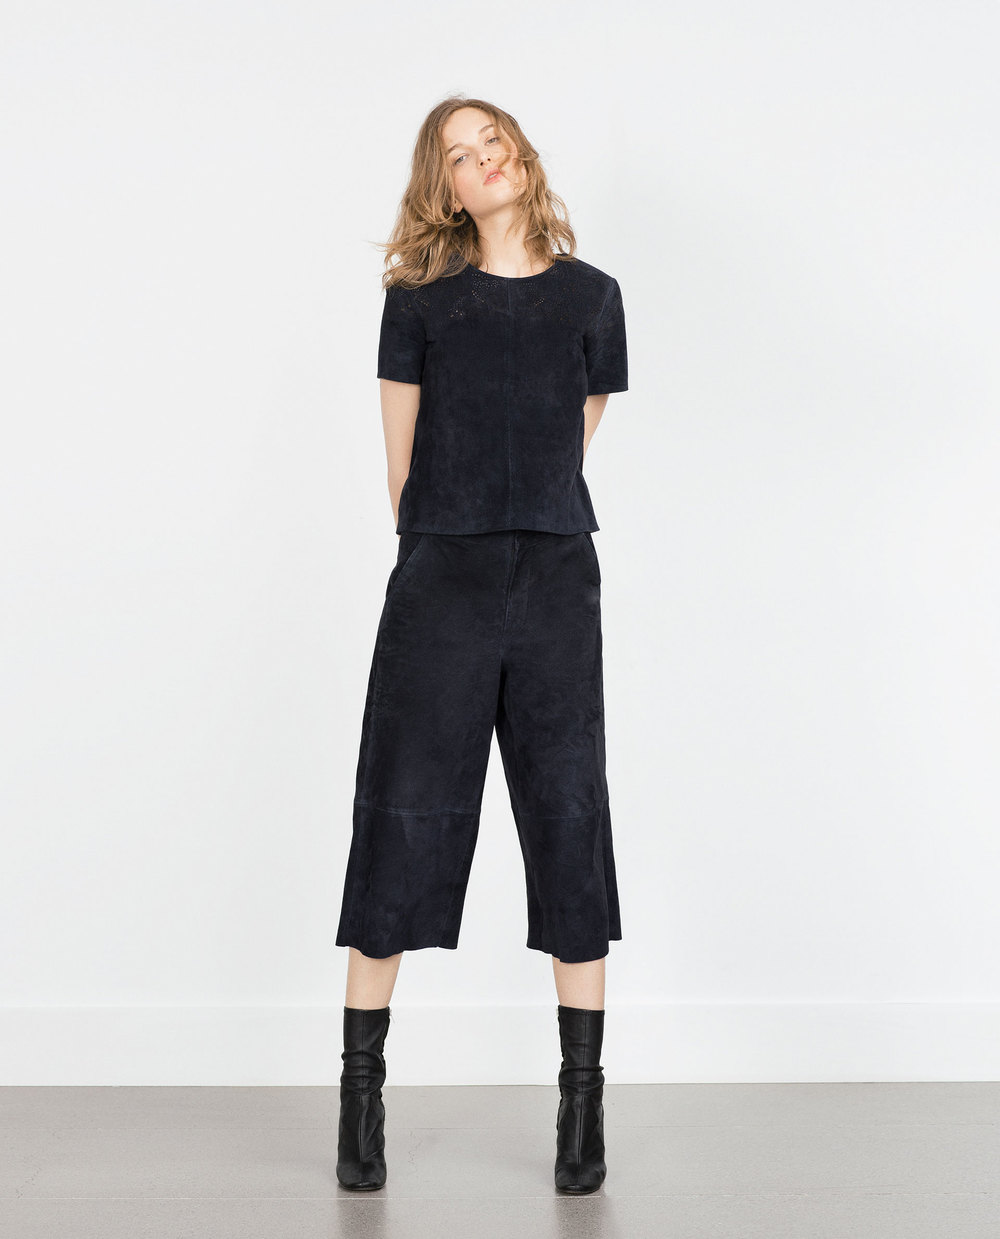 Suede Culottes. Zara. $129. (I have these! They are navy blue. Believe it!)